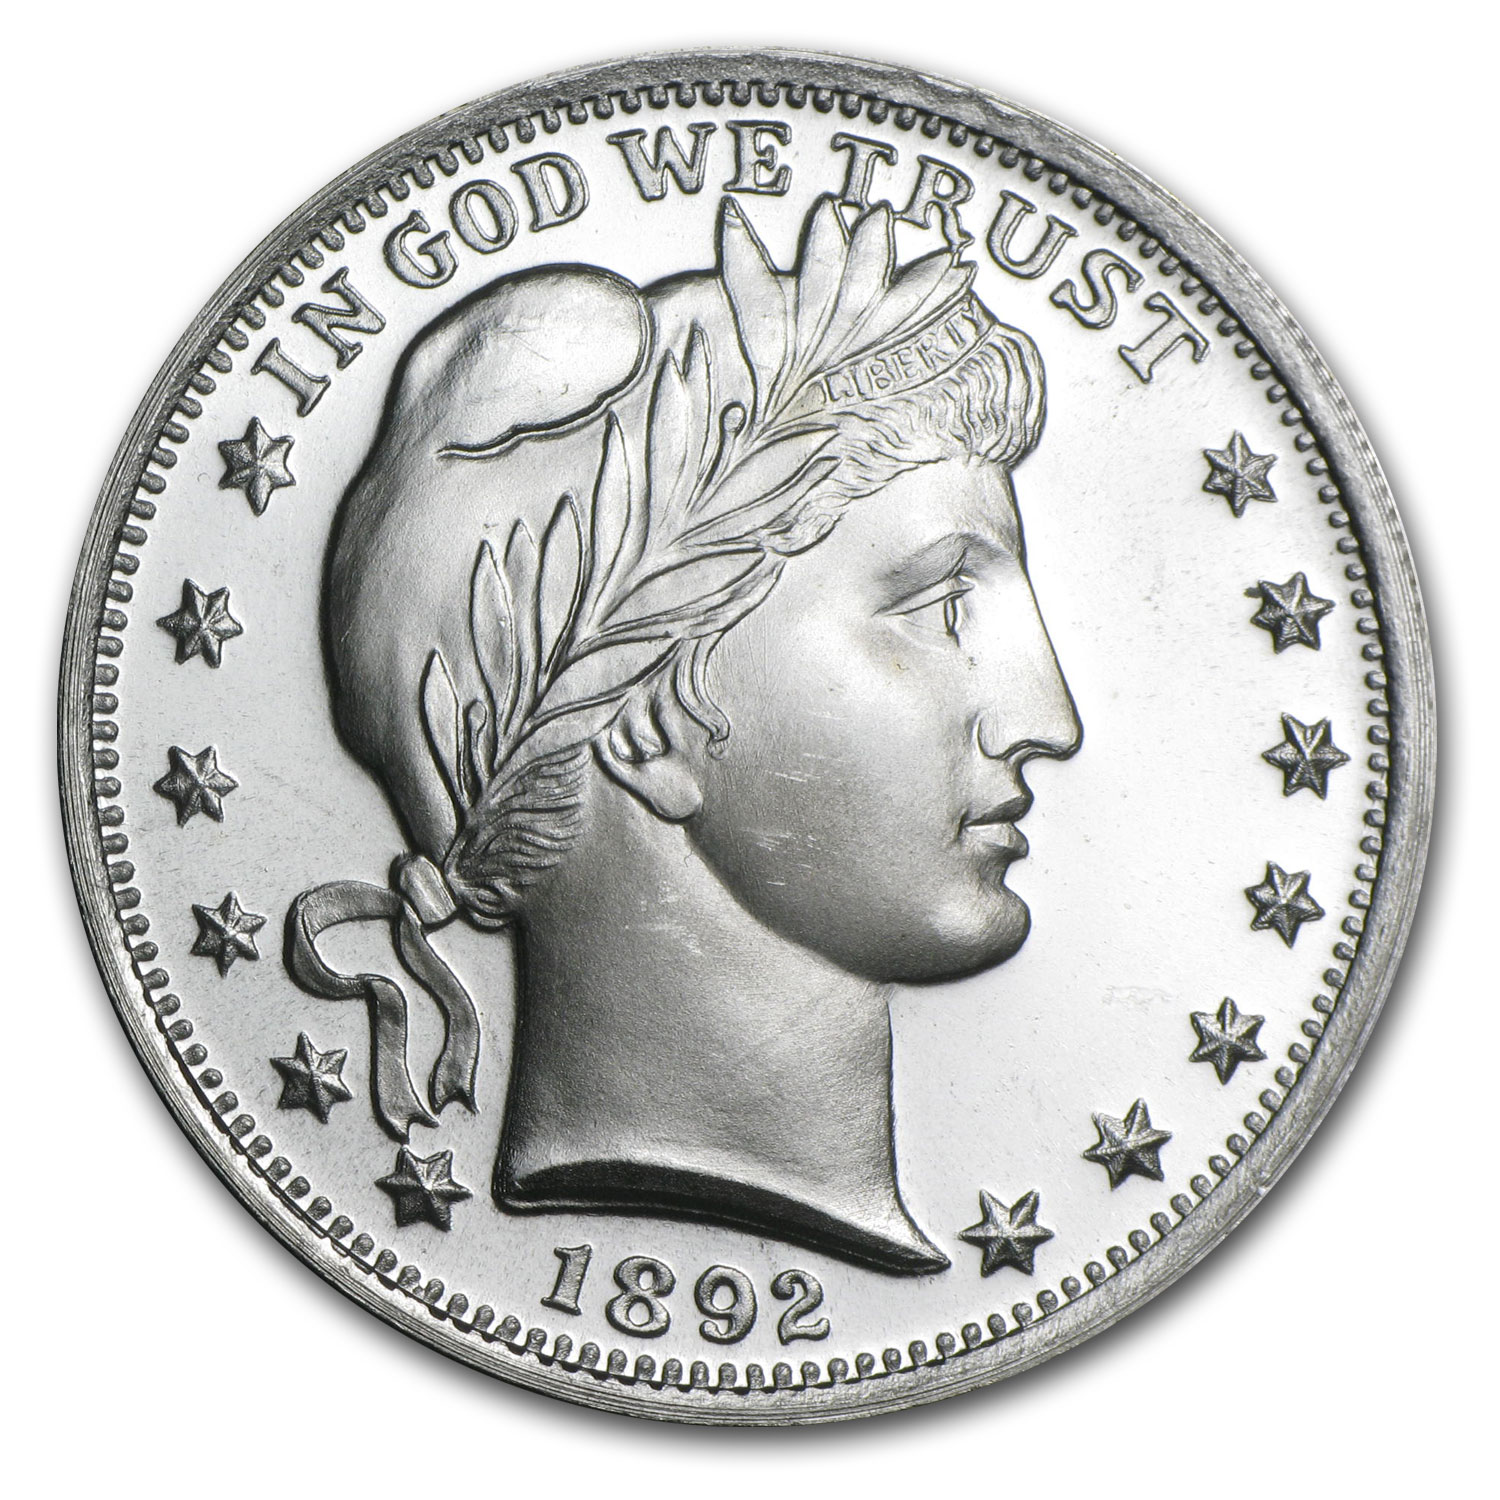 1 oz Silver Round - Barber Design